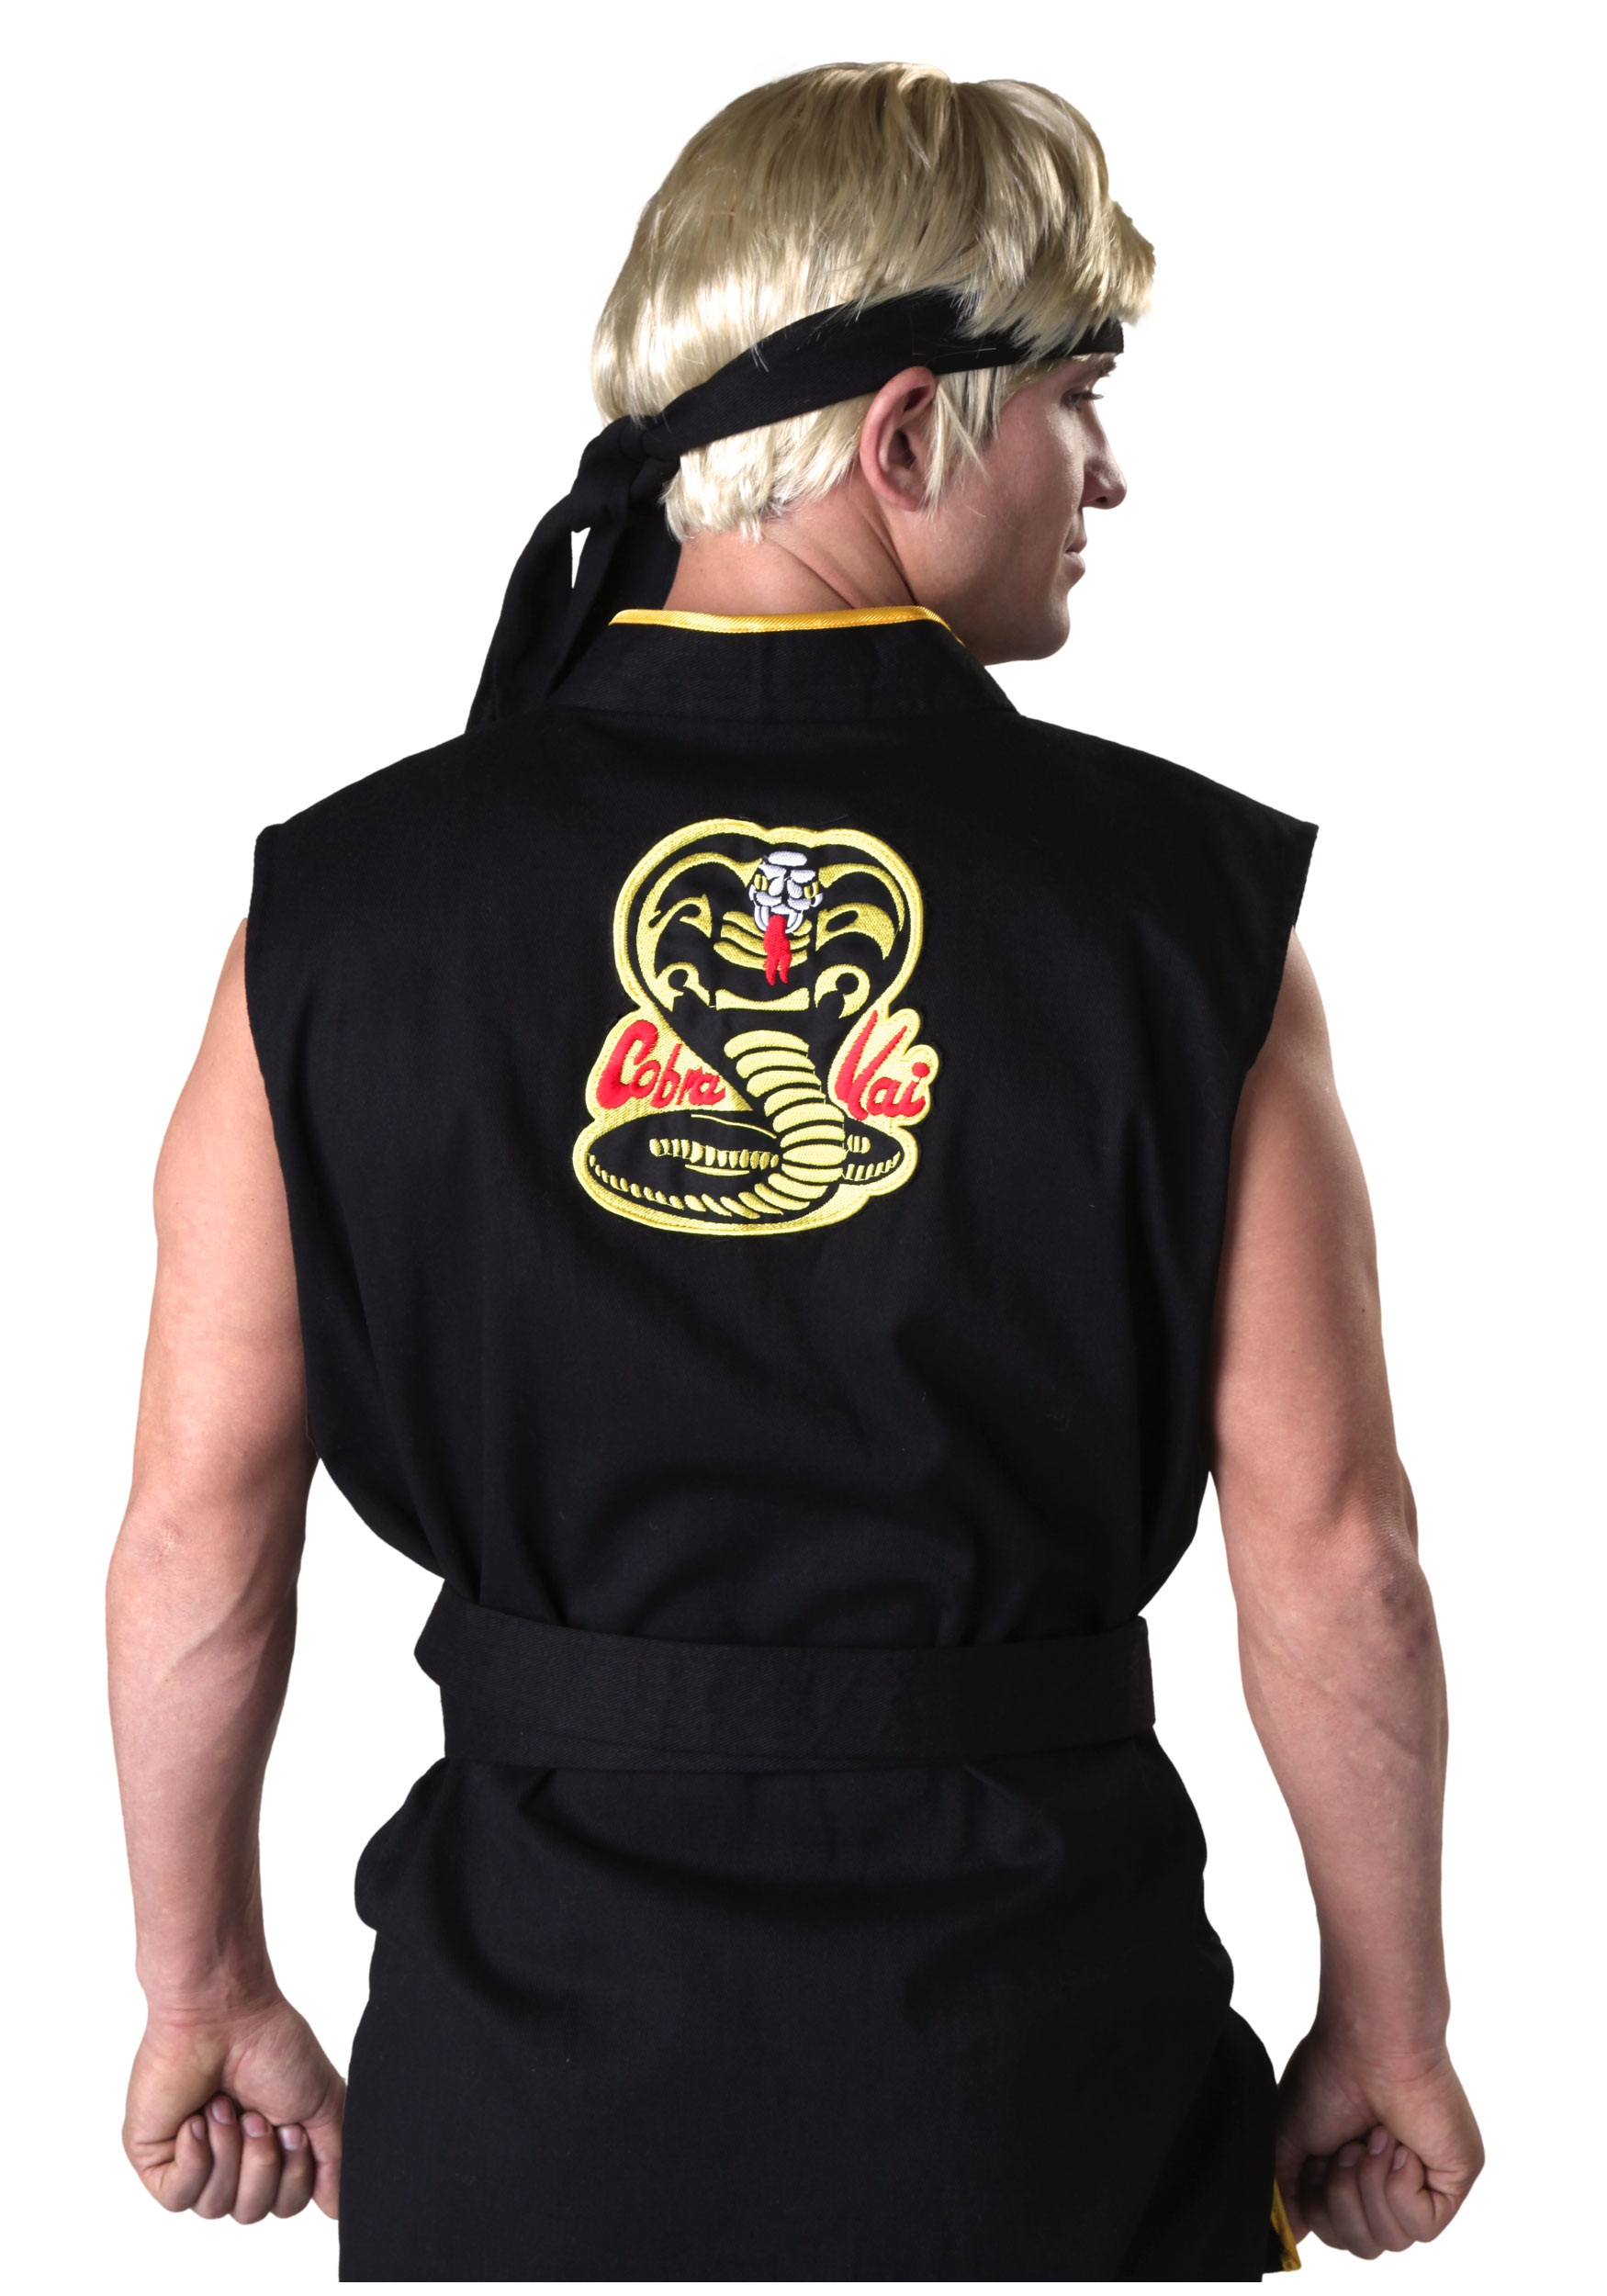 Karate Cobra Kai Costume